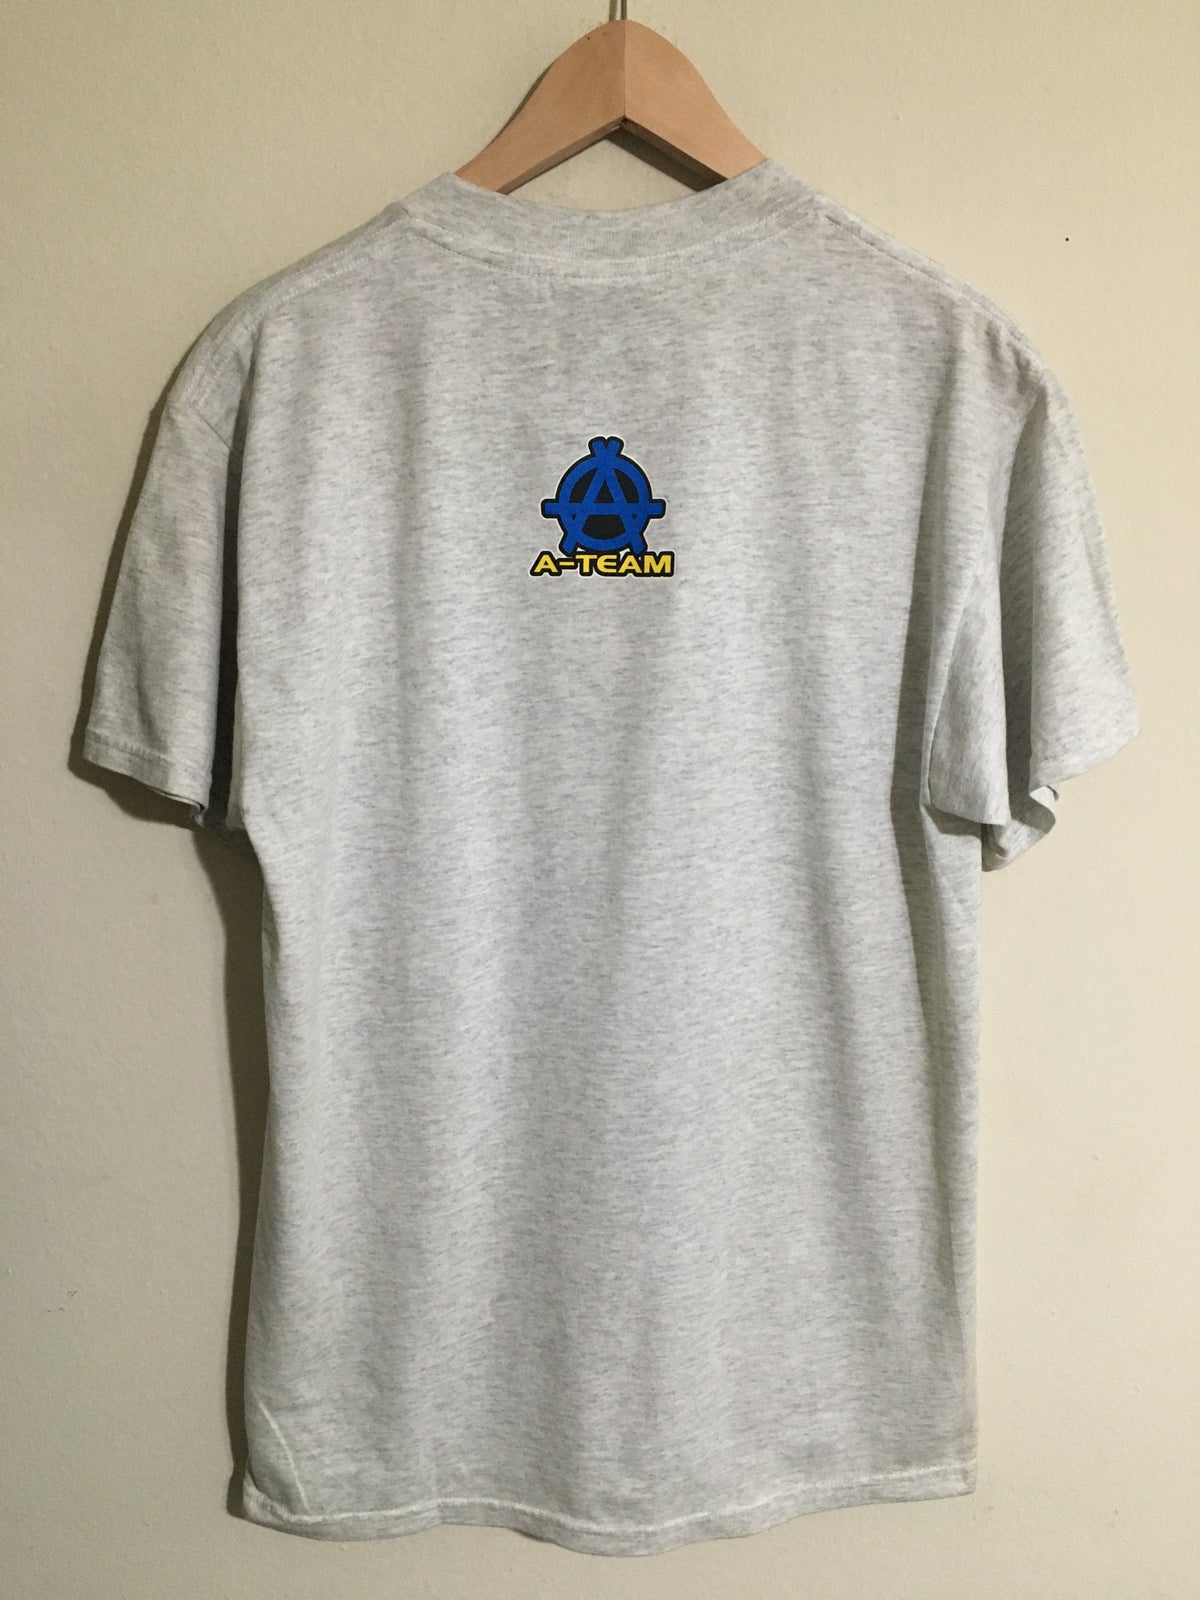 90's Rare A-Team Marc Johnson Skate Tee